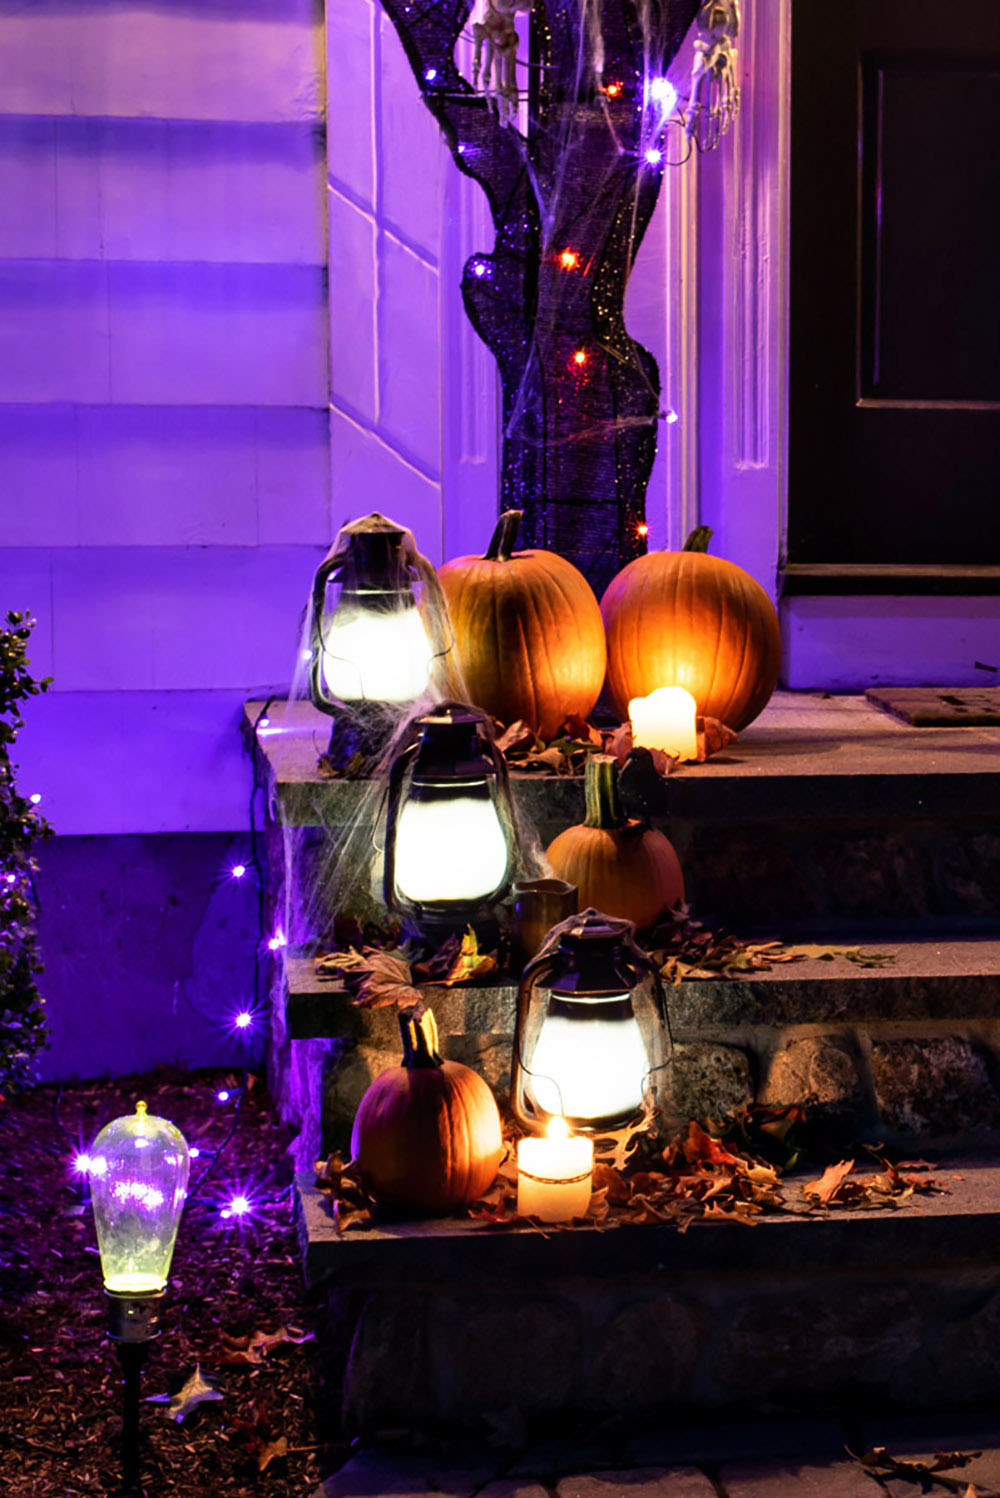 A night view of the lanterns and pumpkins on the front steps